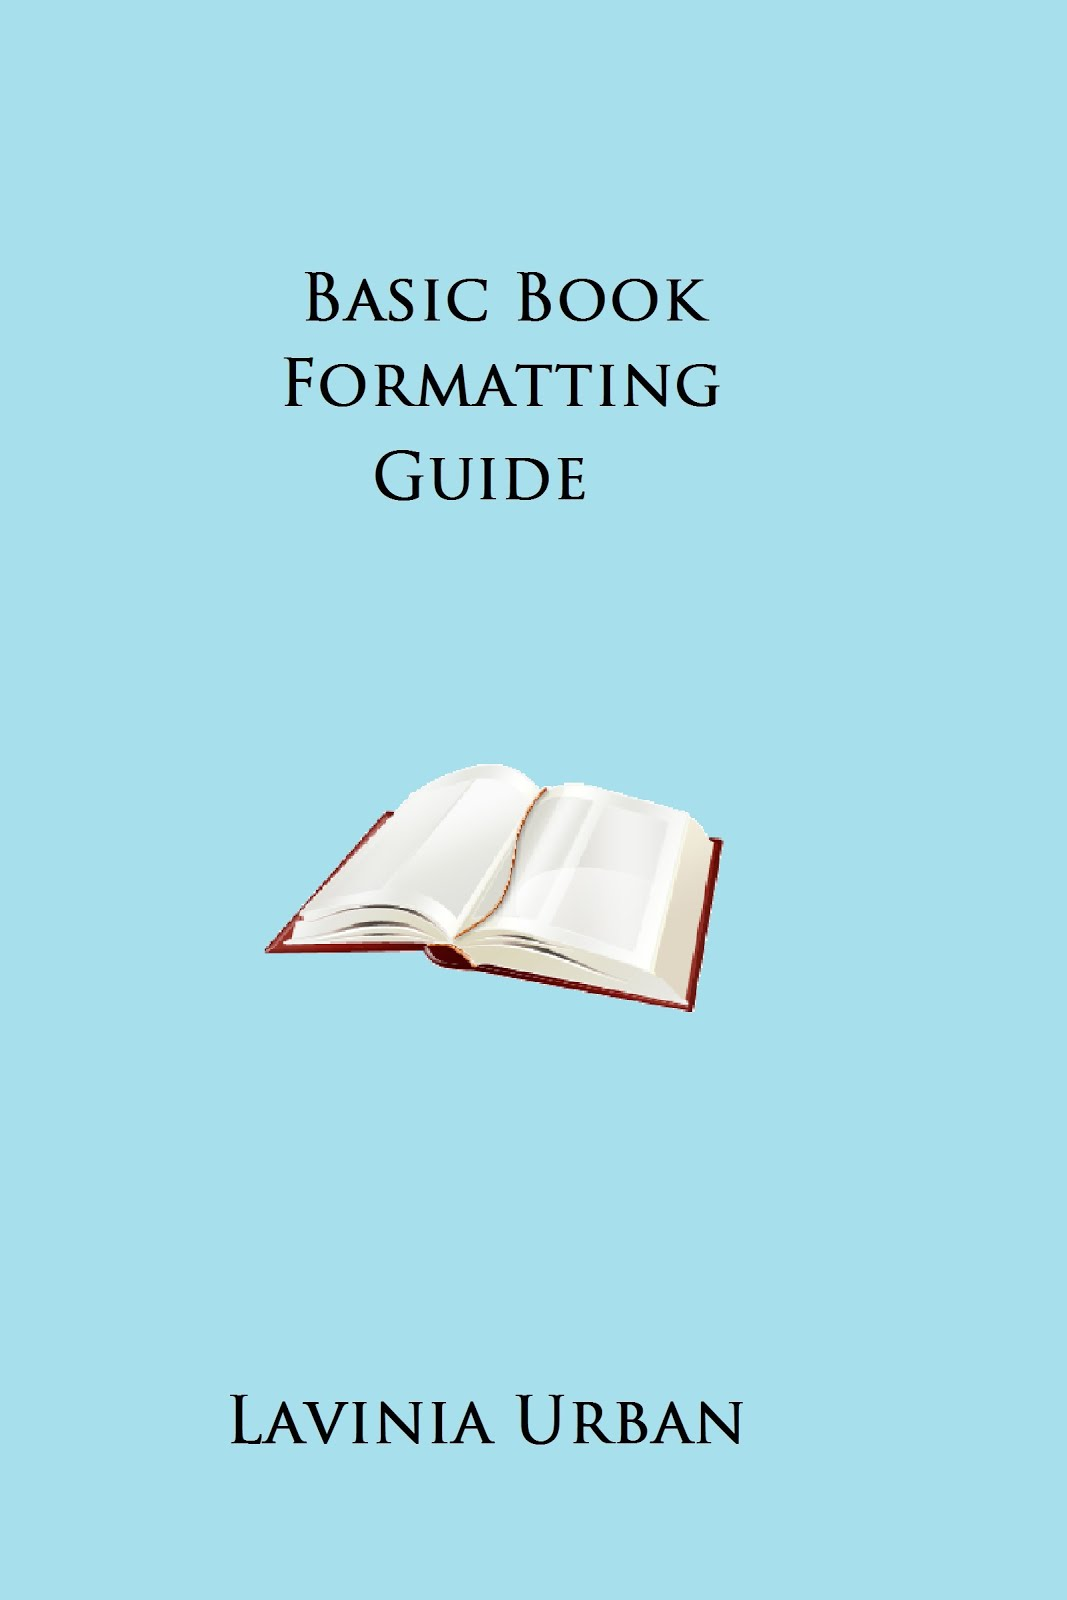 Basic Book Formatting Guide